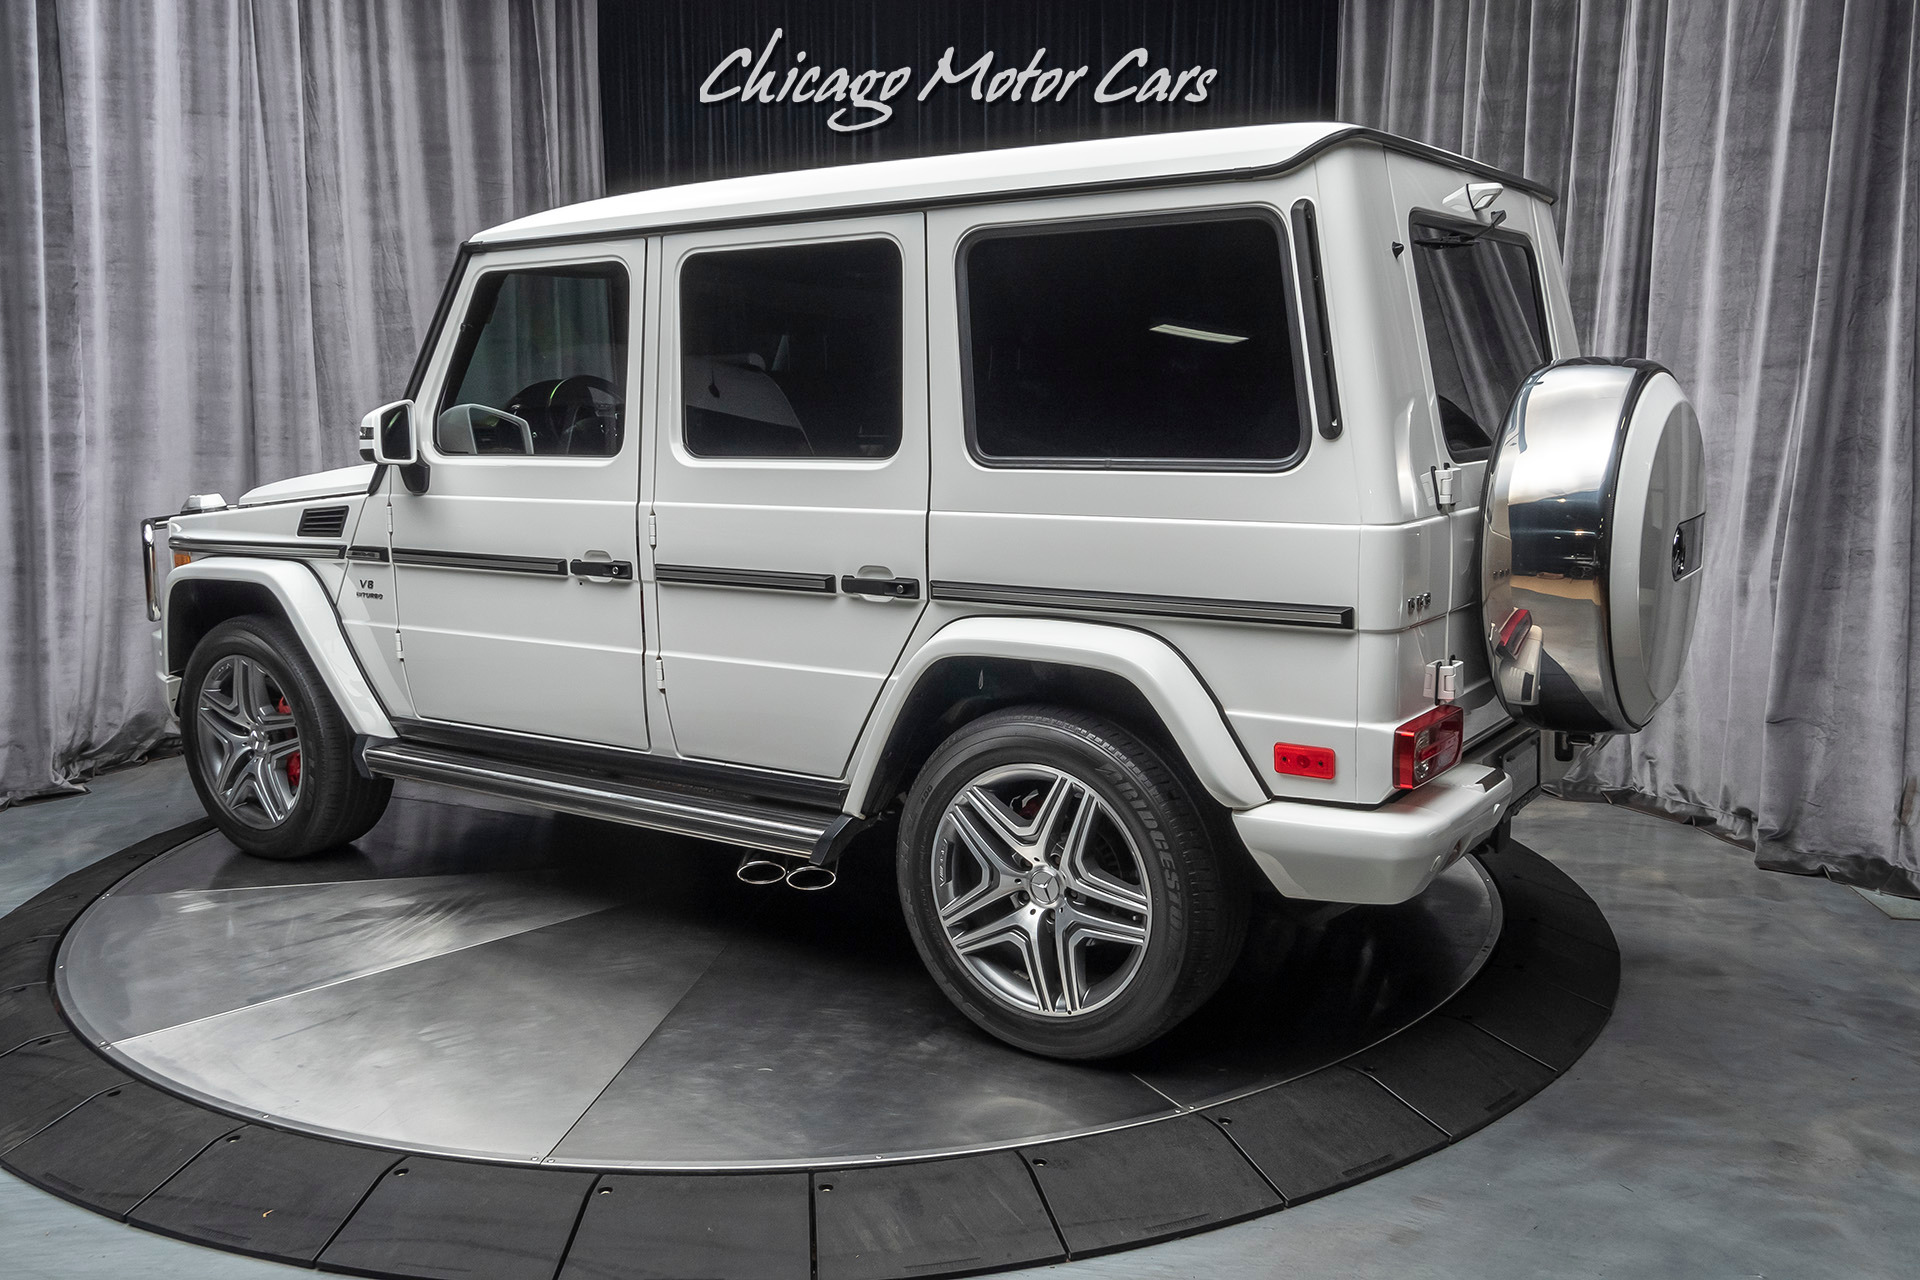 Used-2014-Mercedes-Benz-G63-AMG-4-Matic-141kMSRP-Designo-Exclusive-Leather-Pkg